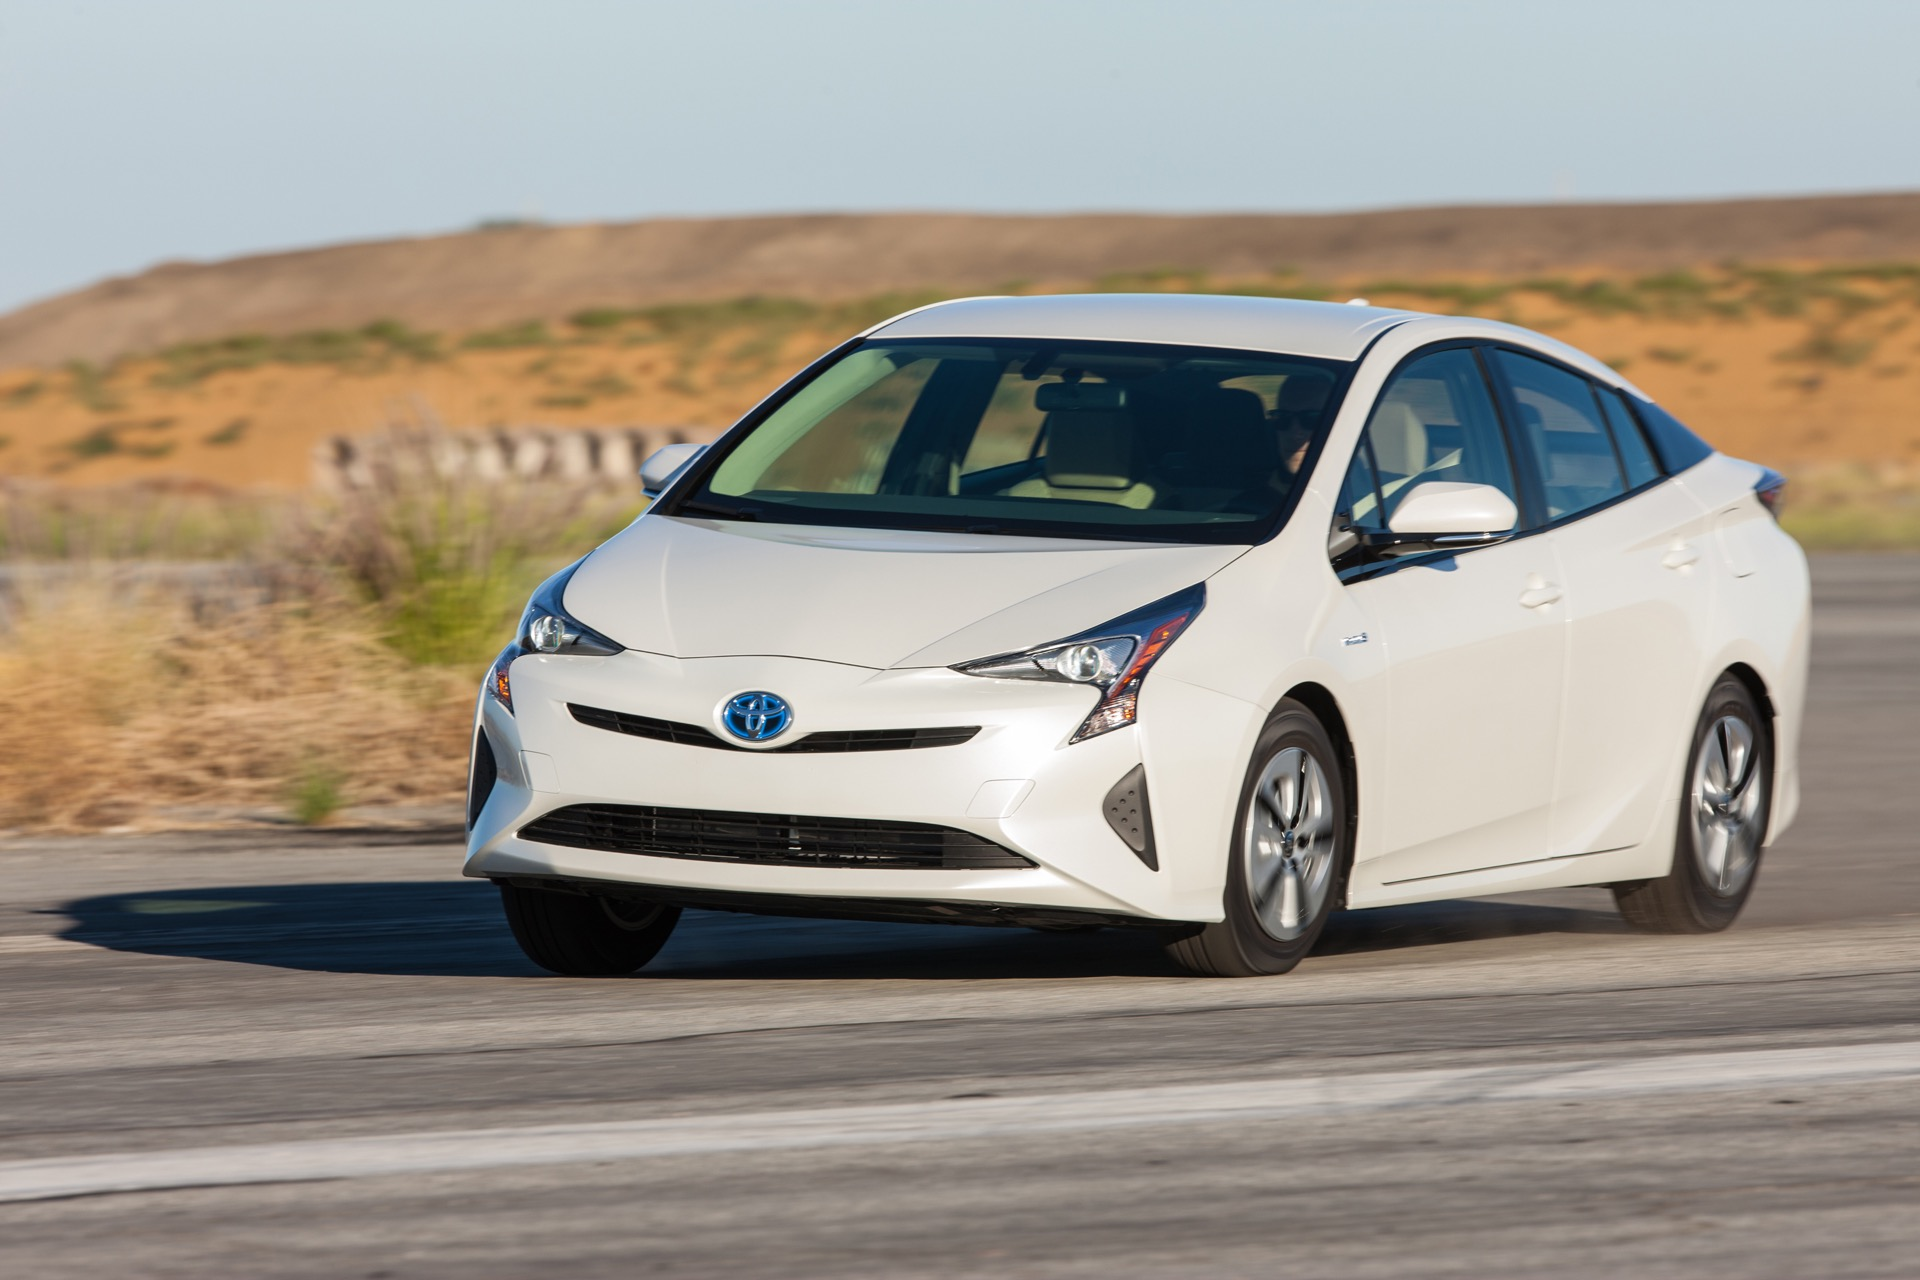 2016 toyota prius lower price higher mpg adds up to even better value. Black Bedroom Furniture Sets. Home Design Ideas